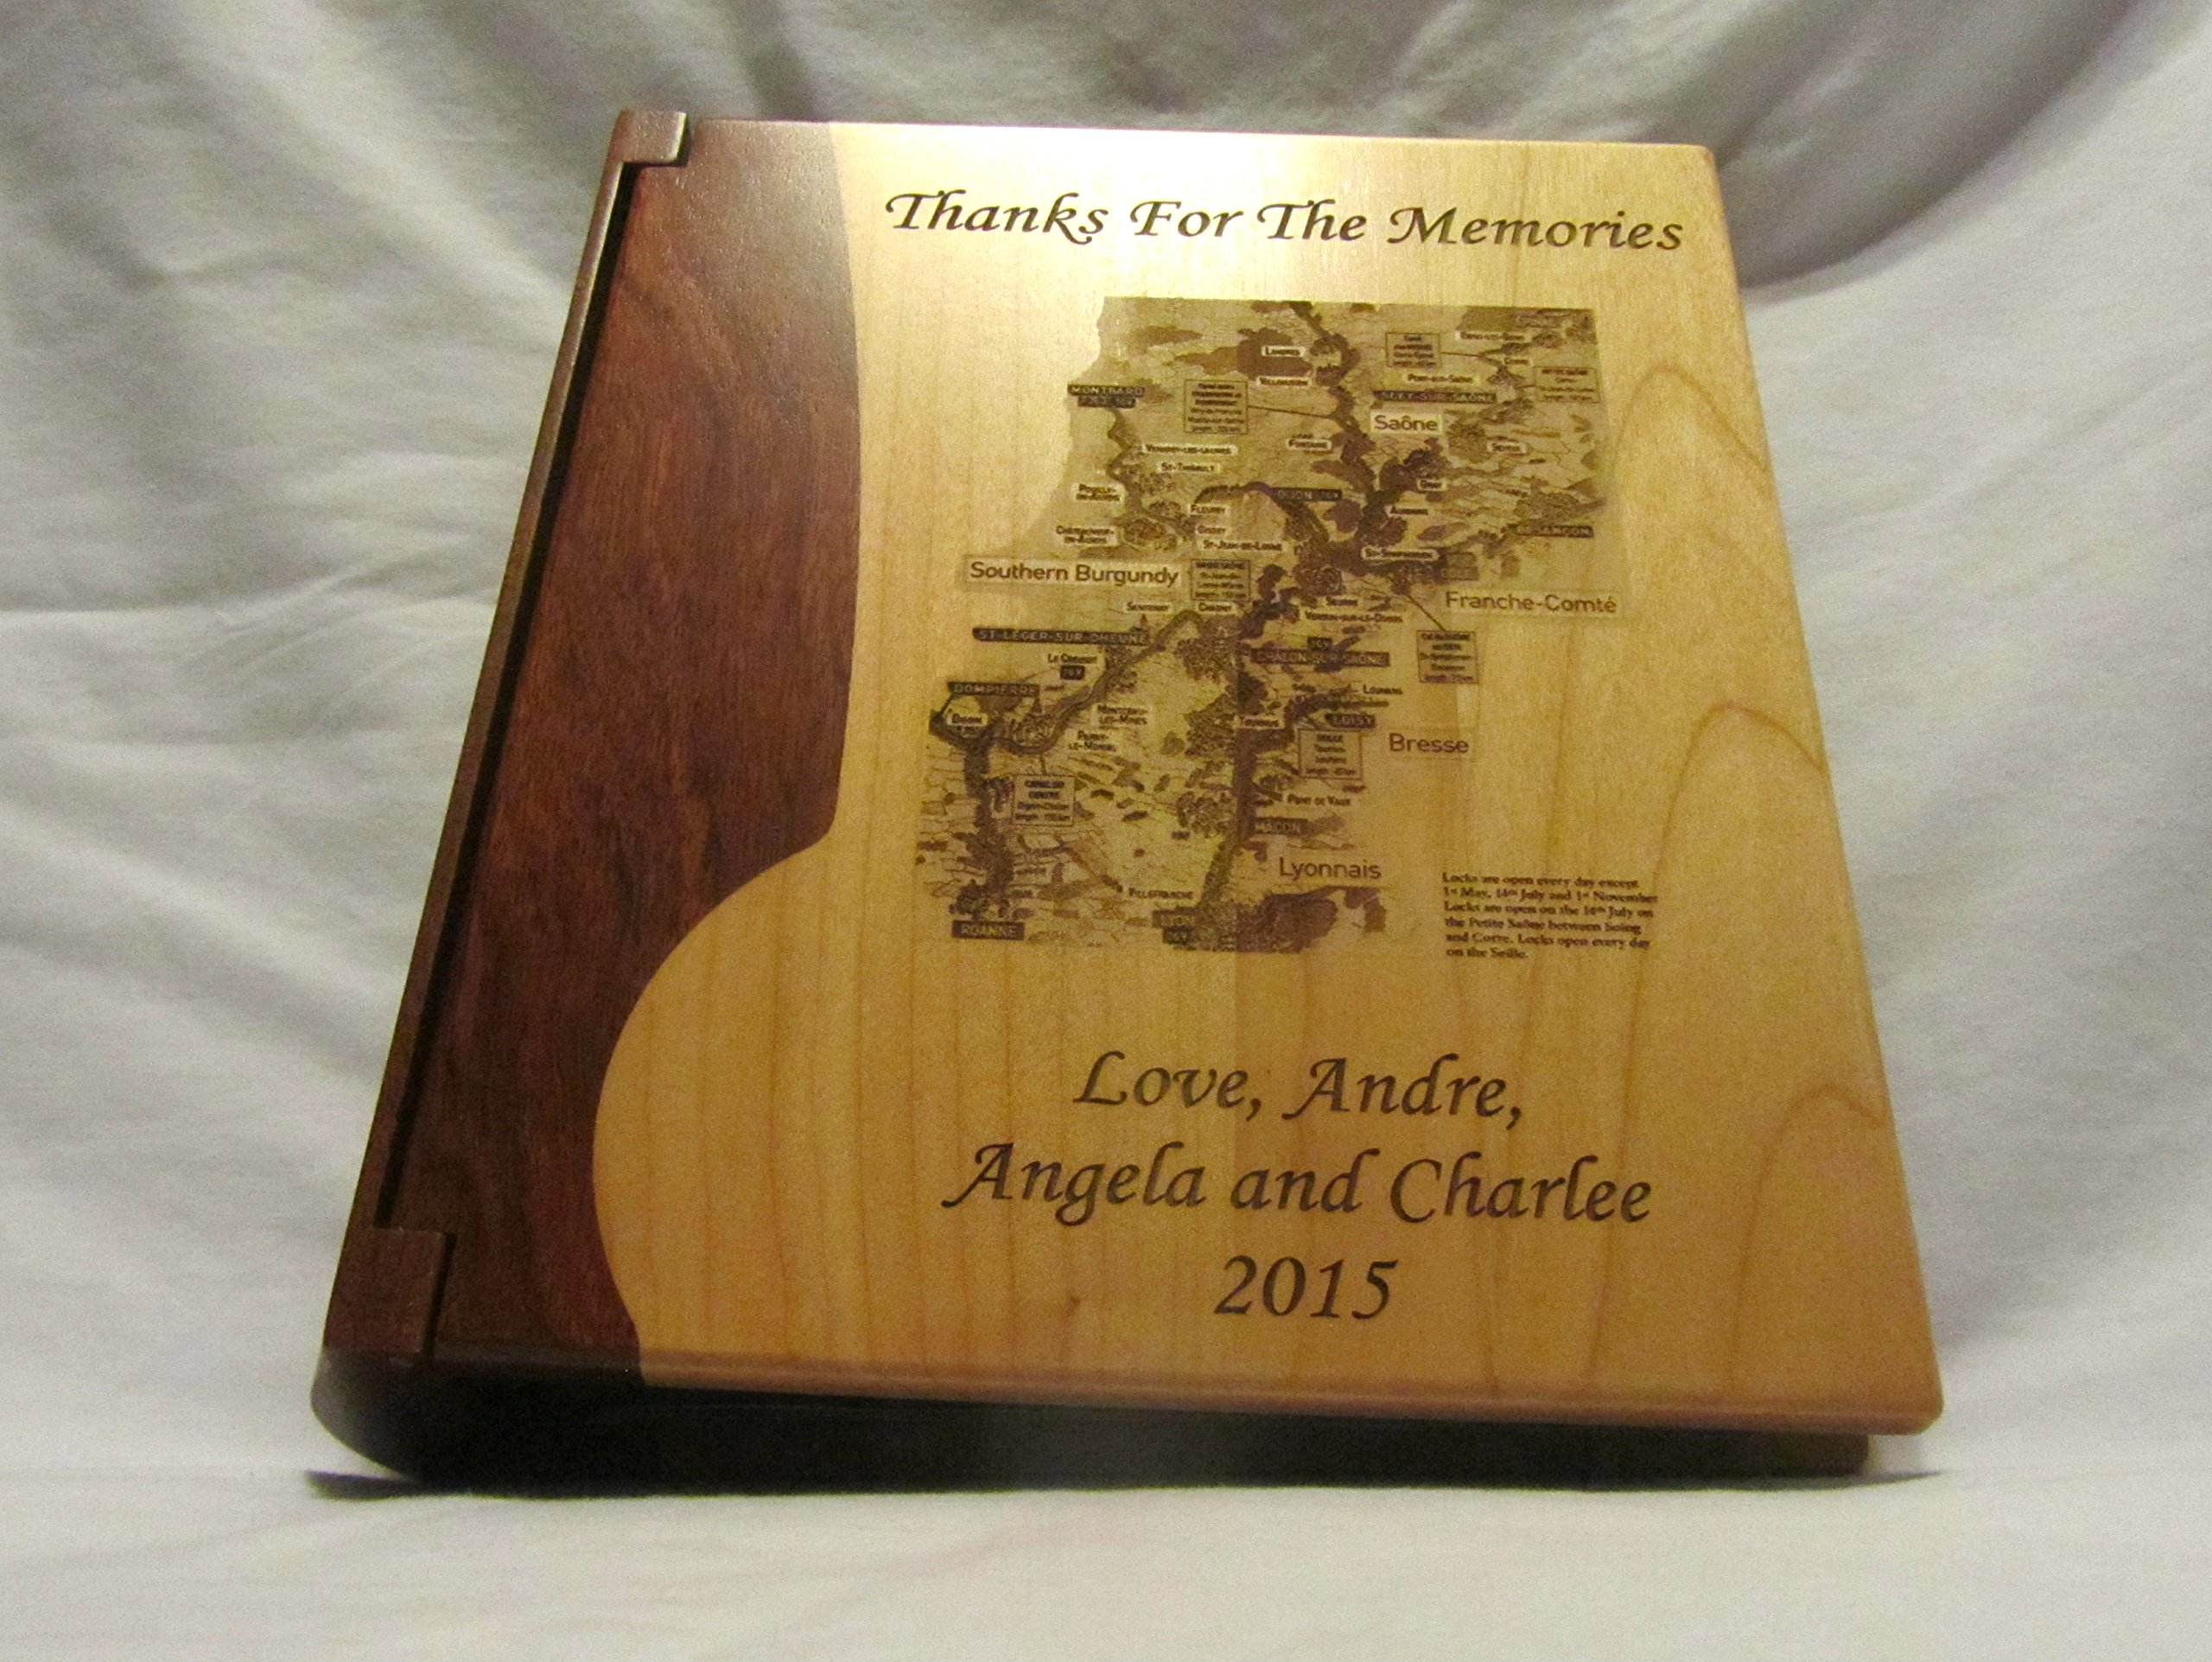 Personalized Wooden Photo Album With Your Custom Design - Large by Whitetail Woodcrafters (Image #4)